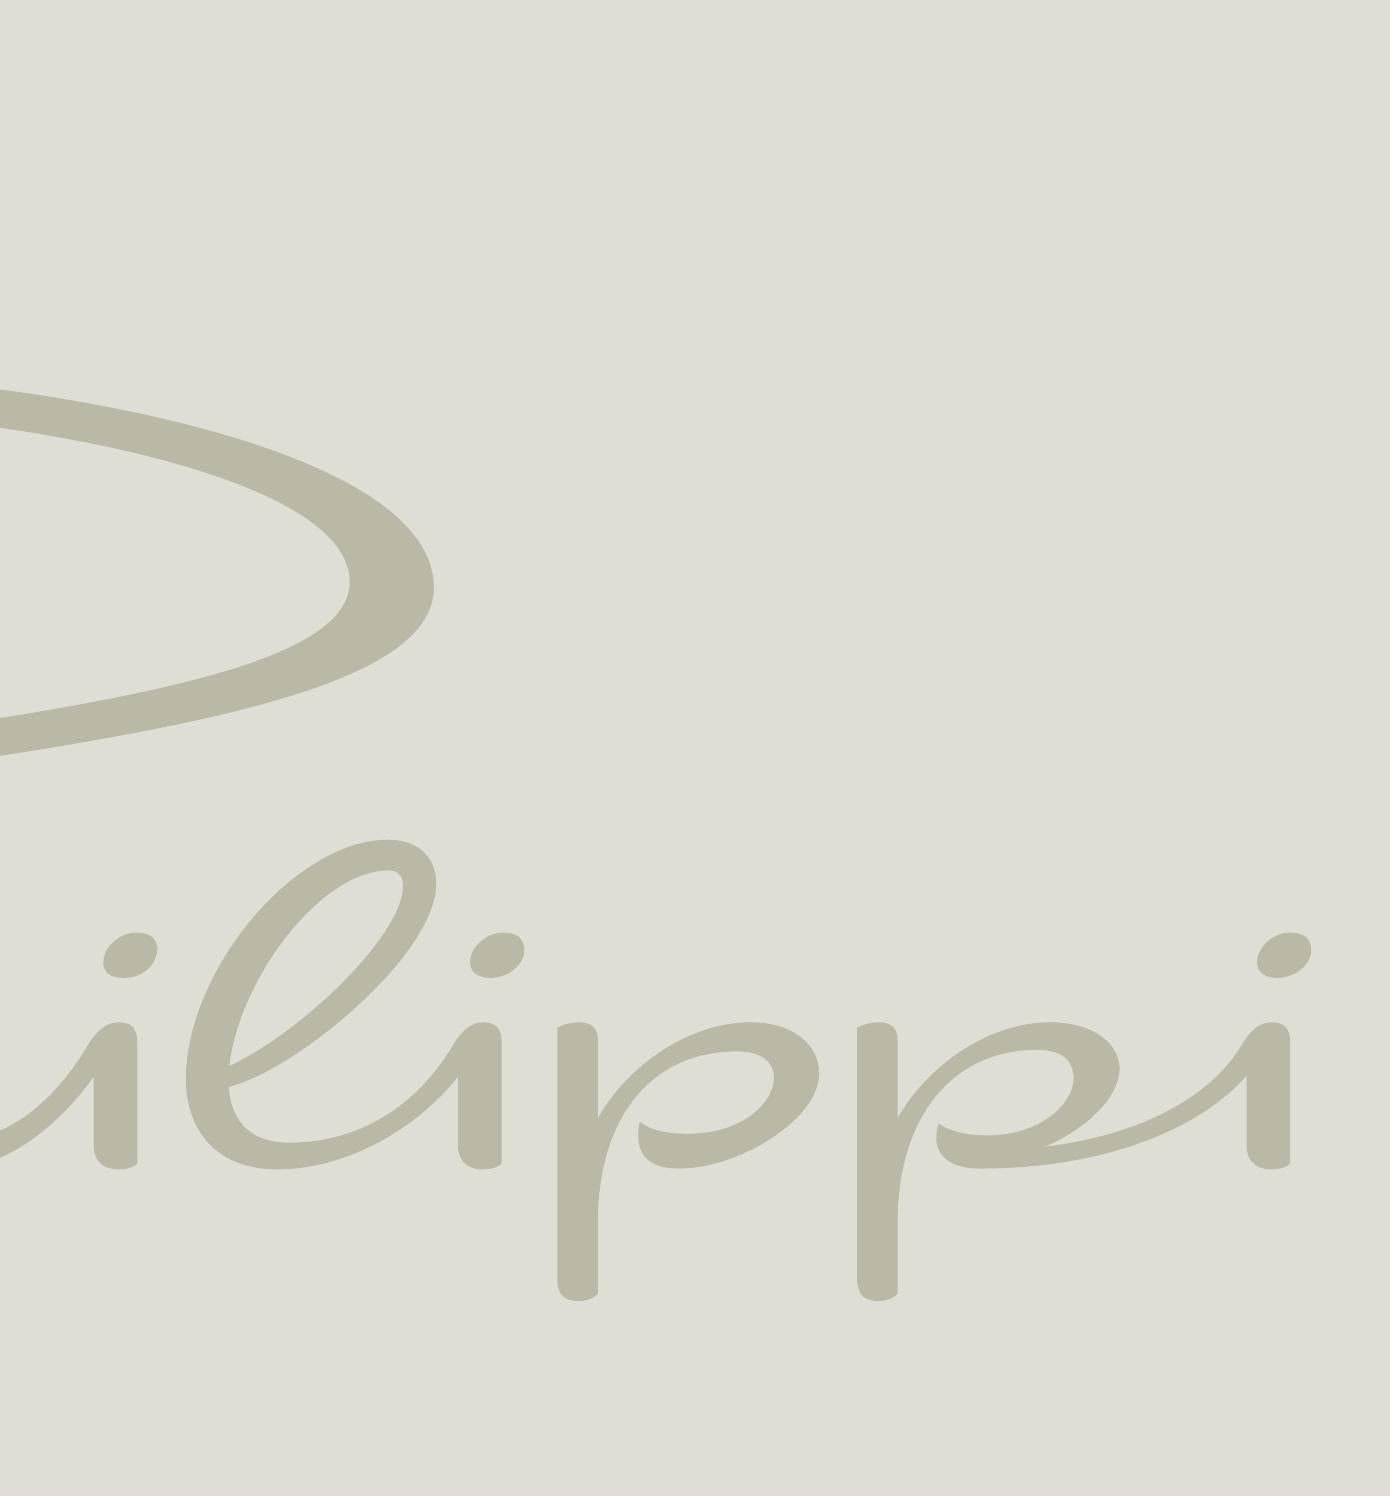 Philippi Catalog 2014 2015 Incl. Saison & News By Philippi - Issuu